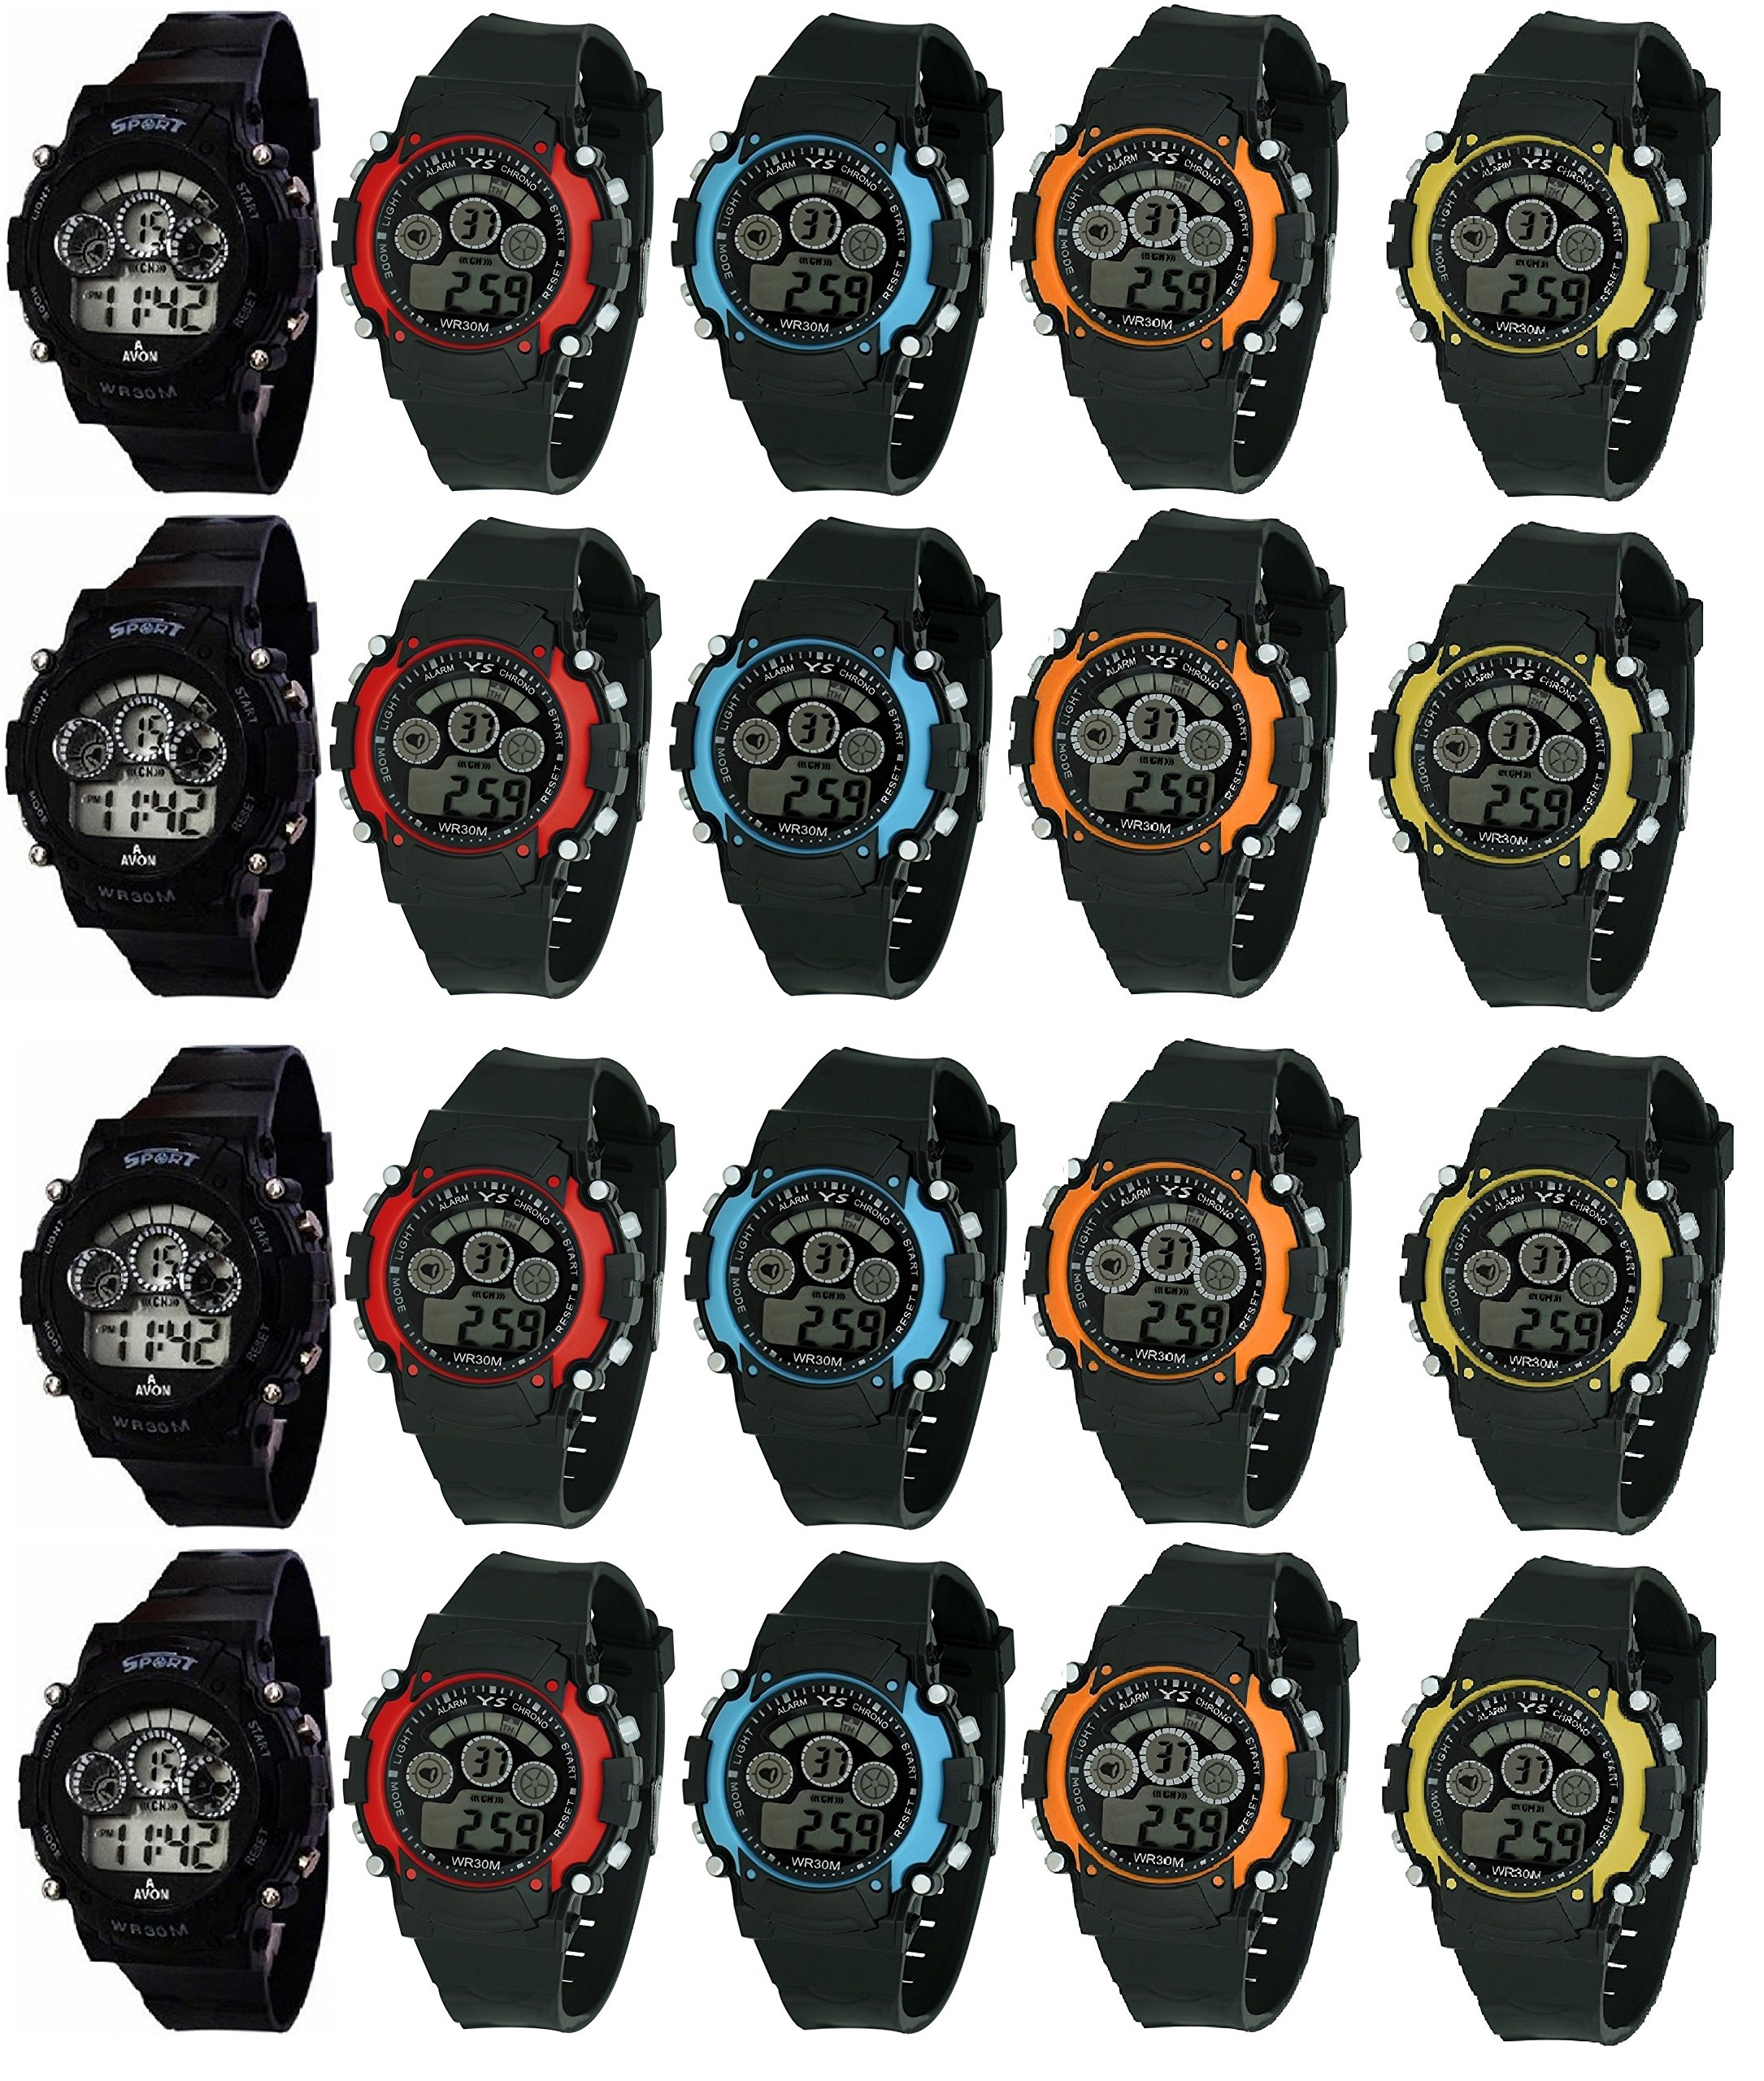 Pappi-Haunt - Kids Favourite - Birthday Party Return Gift - 20 Multifunction Digital Sport Smart Band with 7 Colors Light